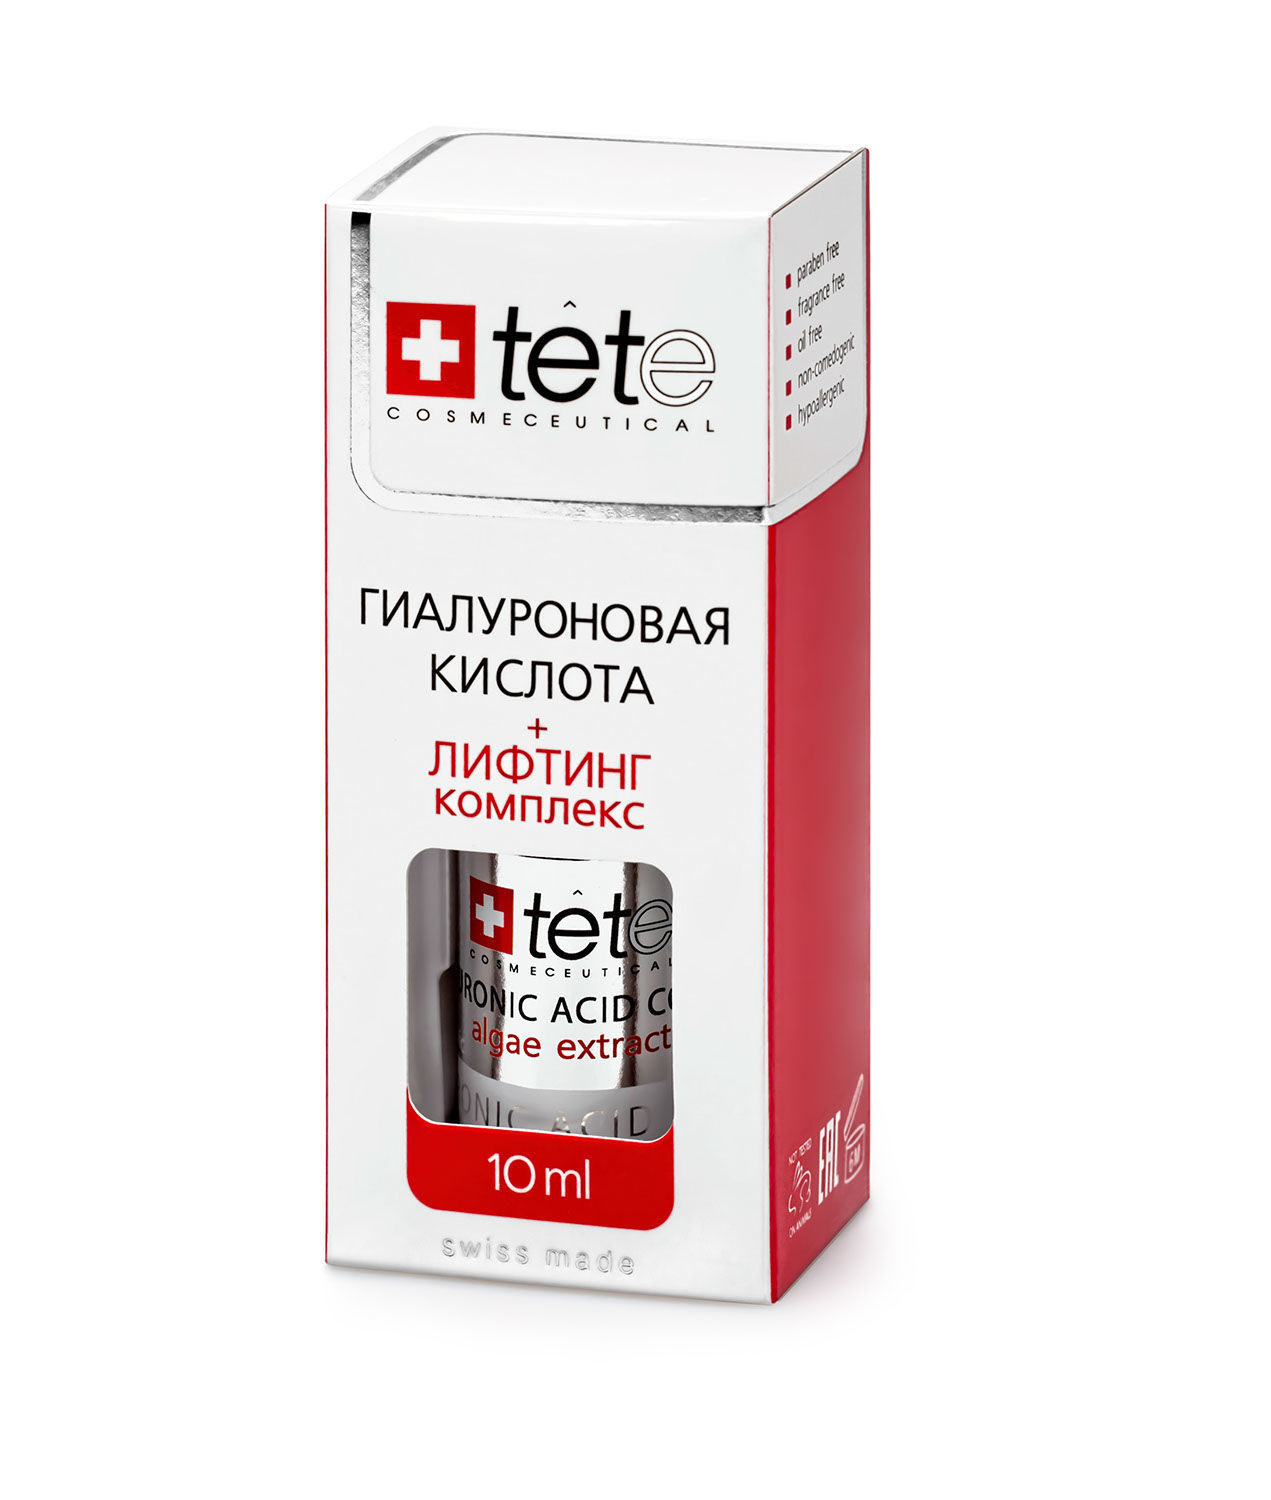 МИНИ Гиалуроновая кислота + Лифтинг комплекс / TETe MINI Hyaluronic Acid + Lifting Complex 10 ml